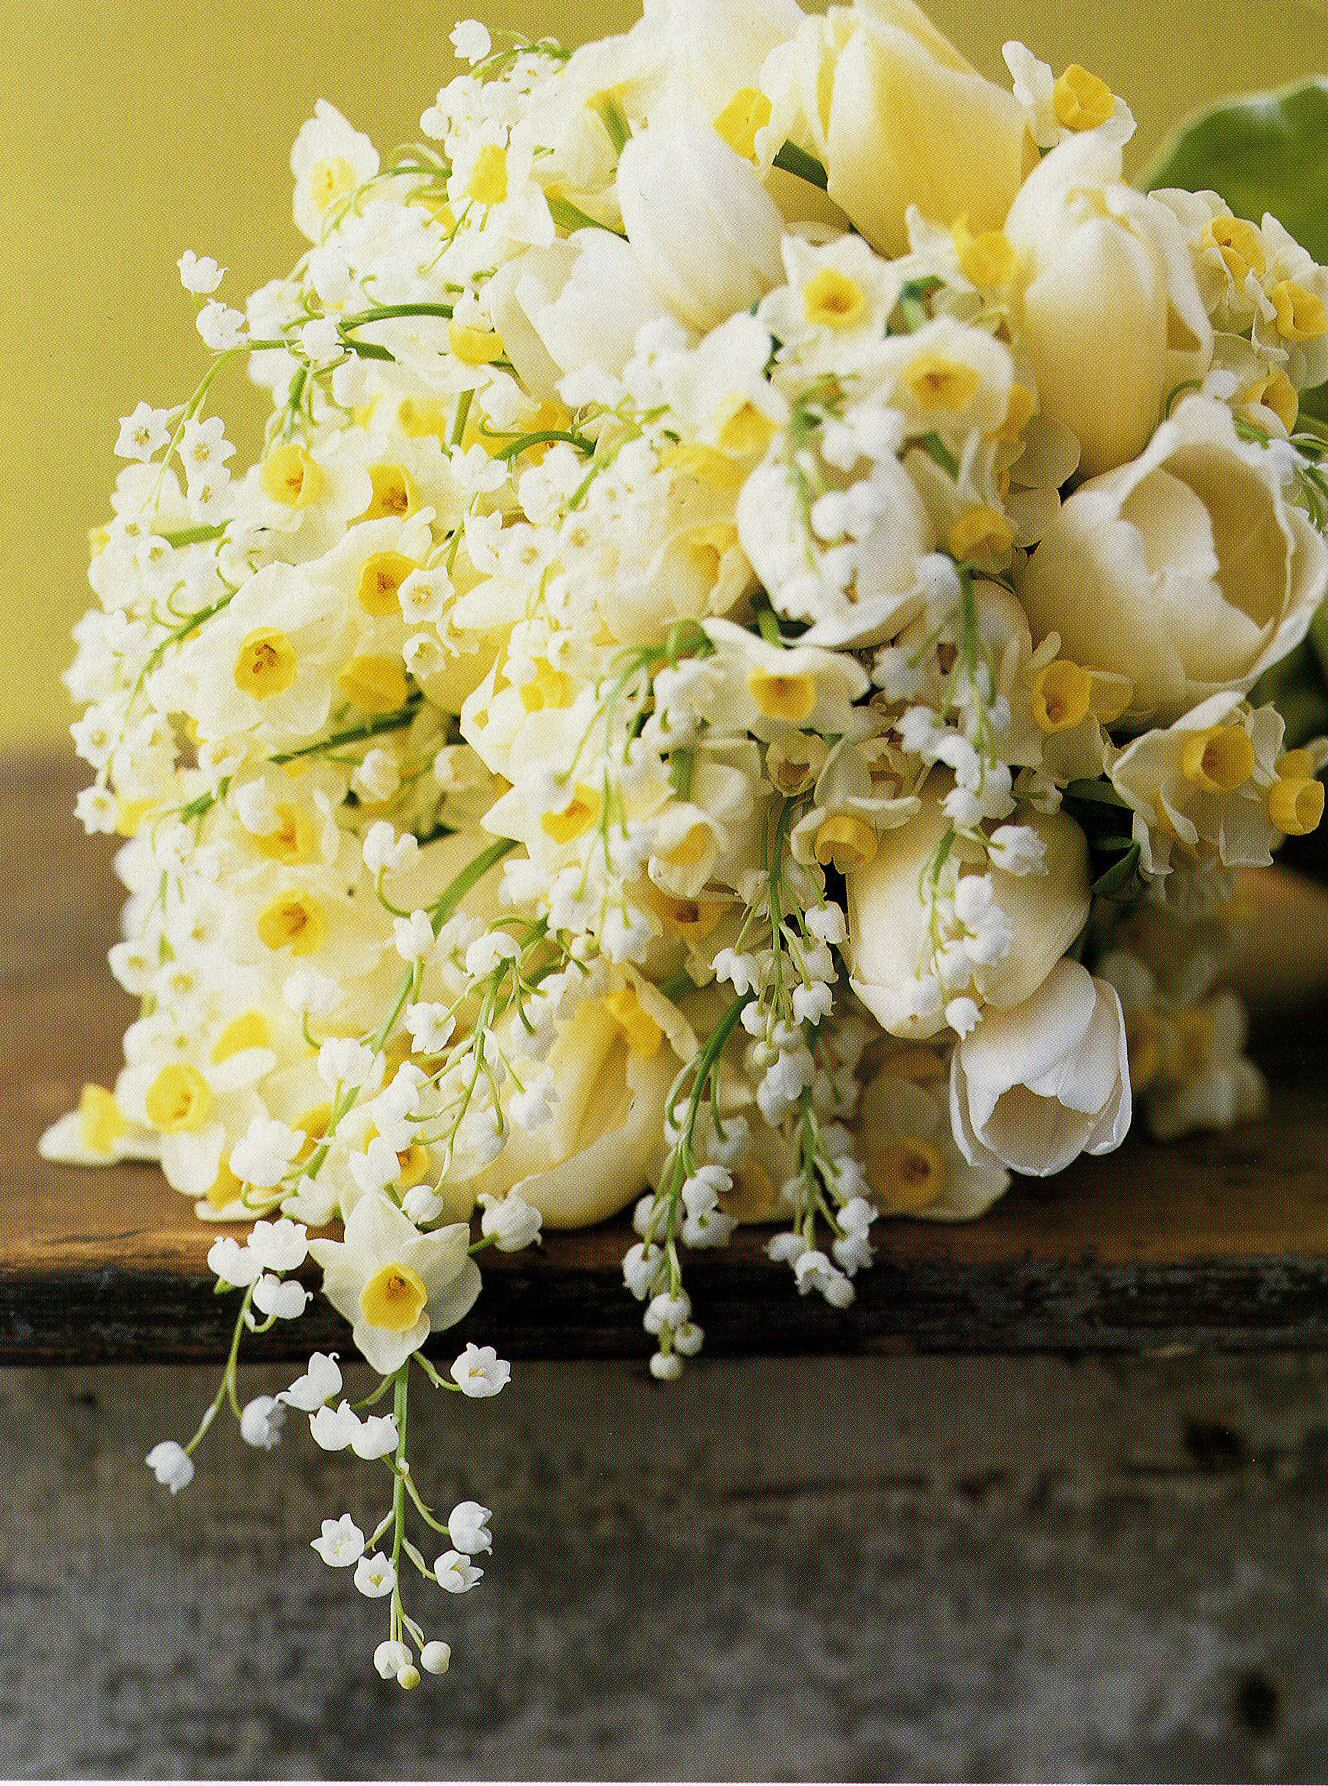 Peonies and lilly of the valley bouquet 10th anniversary flower peonies and lilly of the valley bouquet 10th anniversary flower daffodil trumpet shaped daffodils represent joy izmirmasajfo